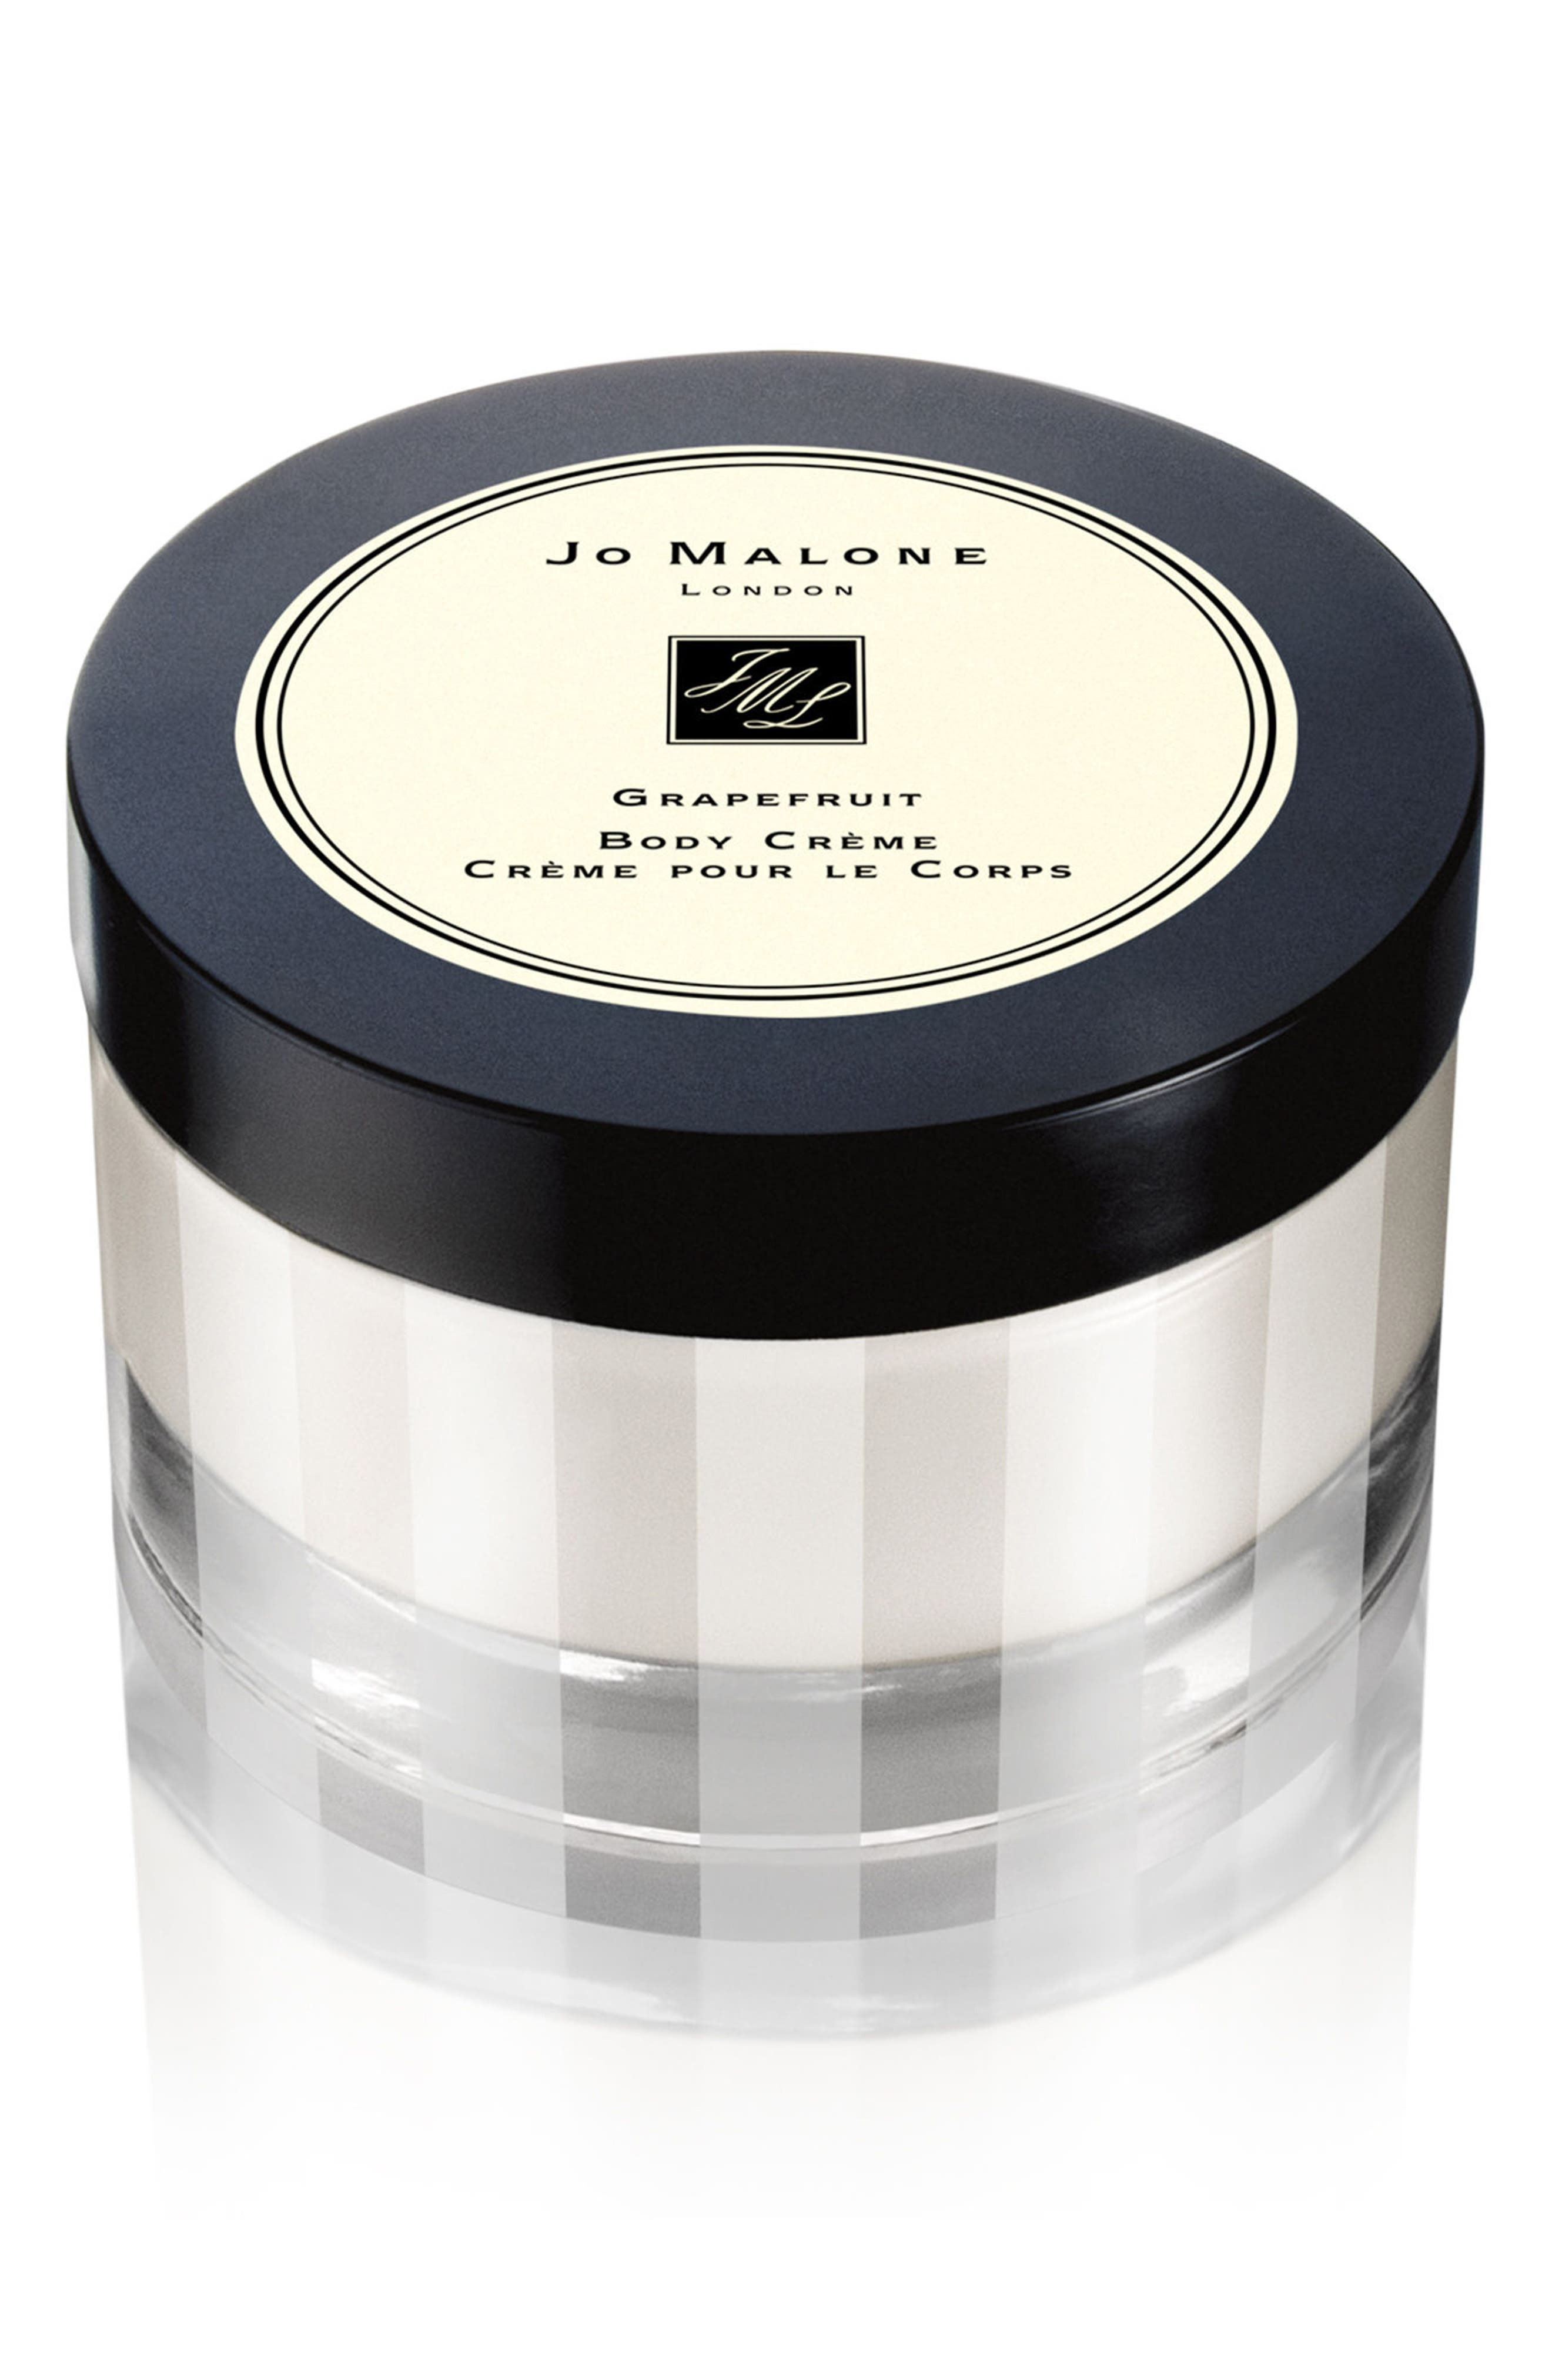 Alternate Image 1 Selected - Jo Malone London™ 'Grapefruit' Body Crème